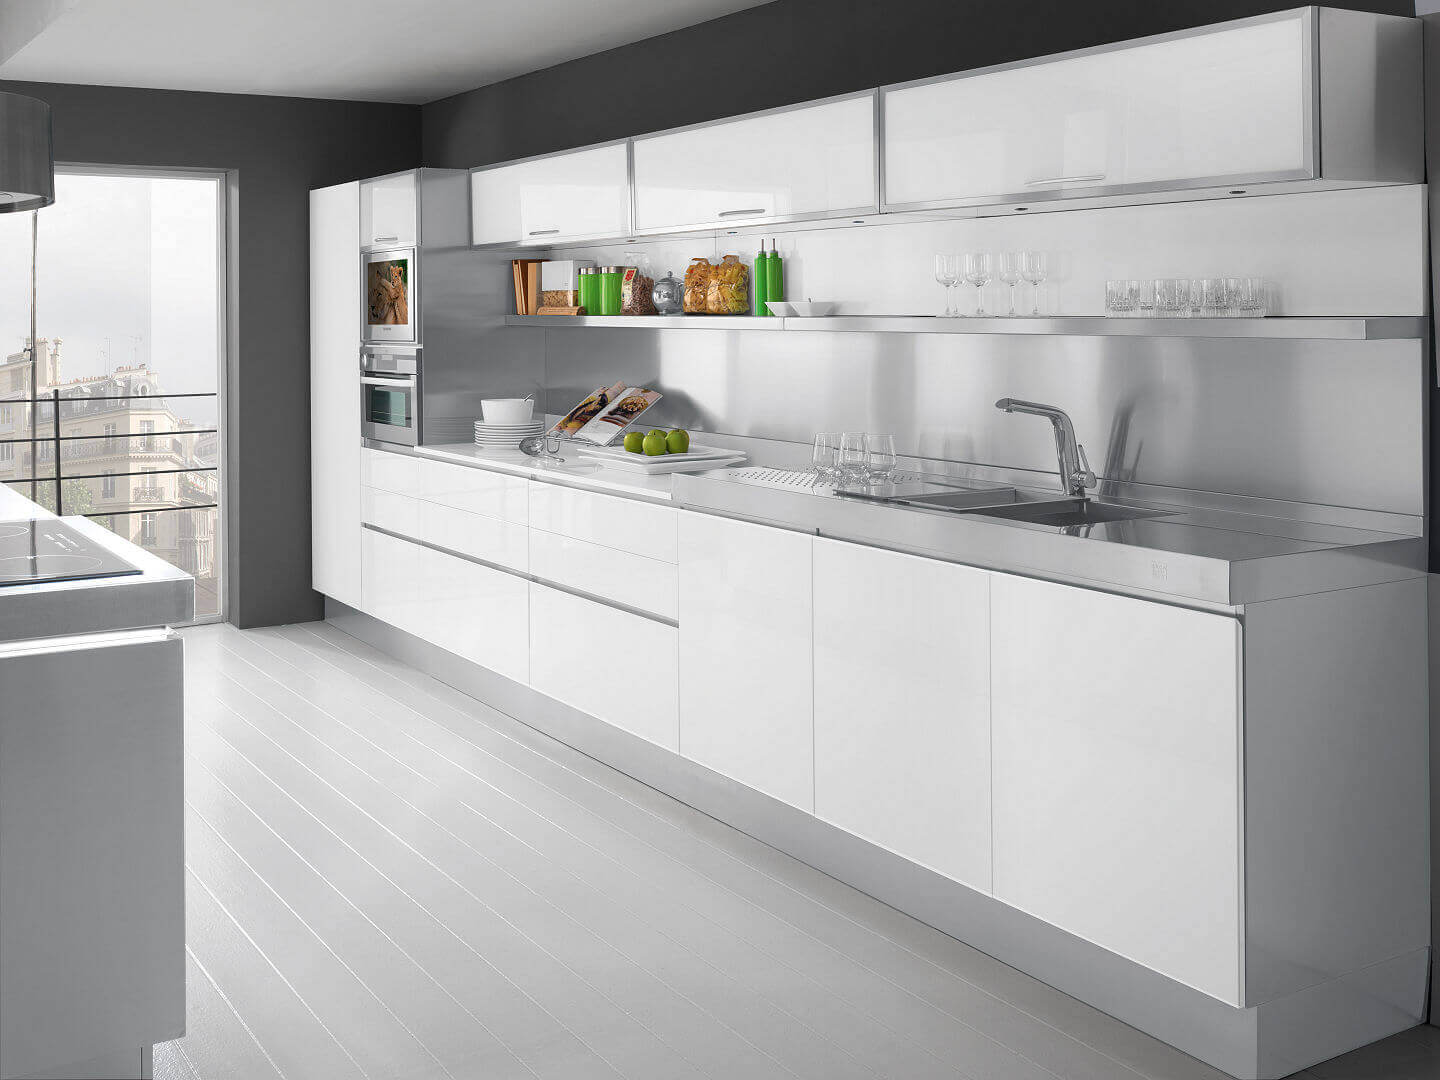 Arca Cucine Italy - Kitchen Maid Model Tren - In front Tinted Glass - Stainless steel structure - Top Steel - Central island with Hob.